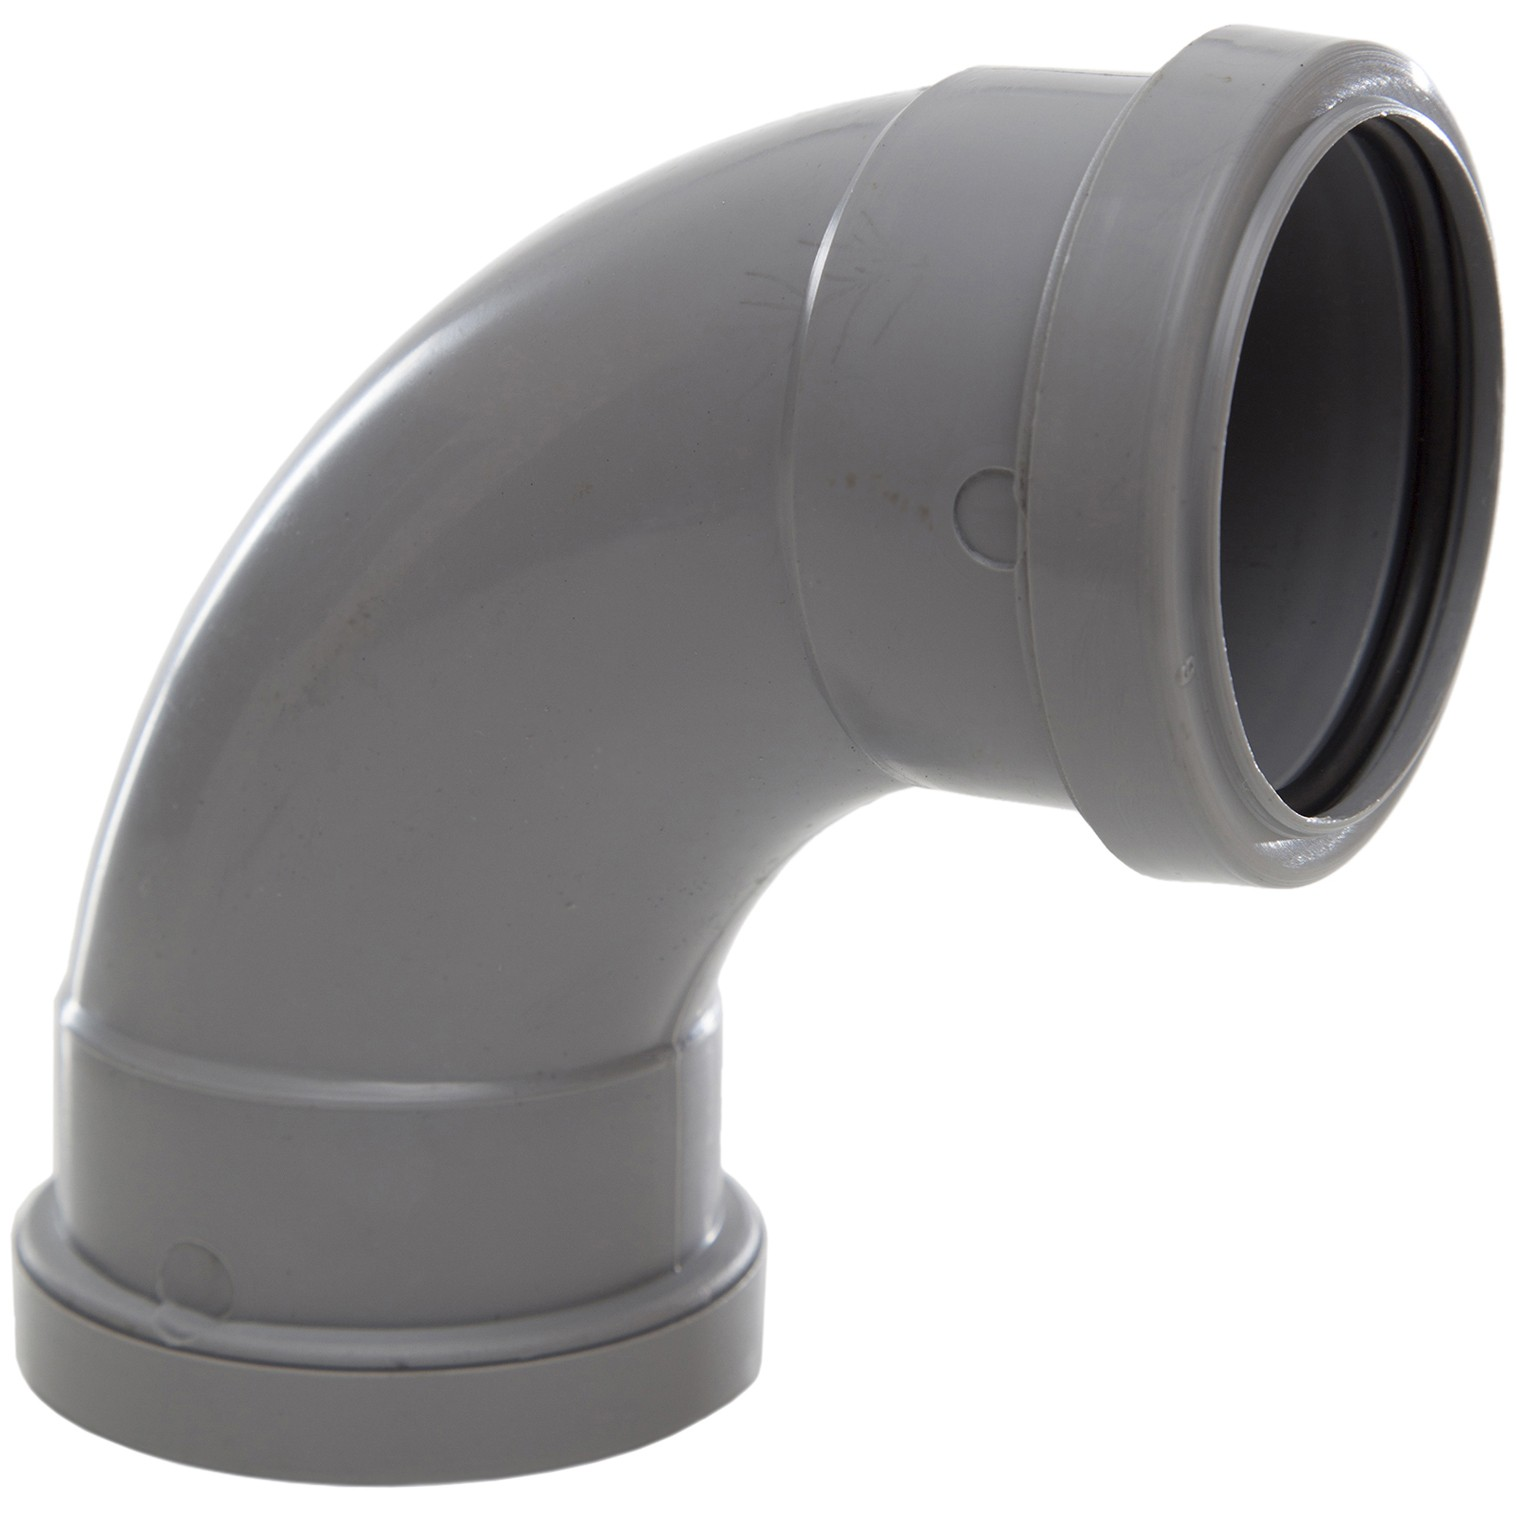 Polypipe 50mm Push Fit Waste 91.25 Degree Swept Bend - Grey